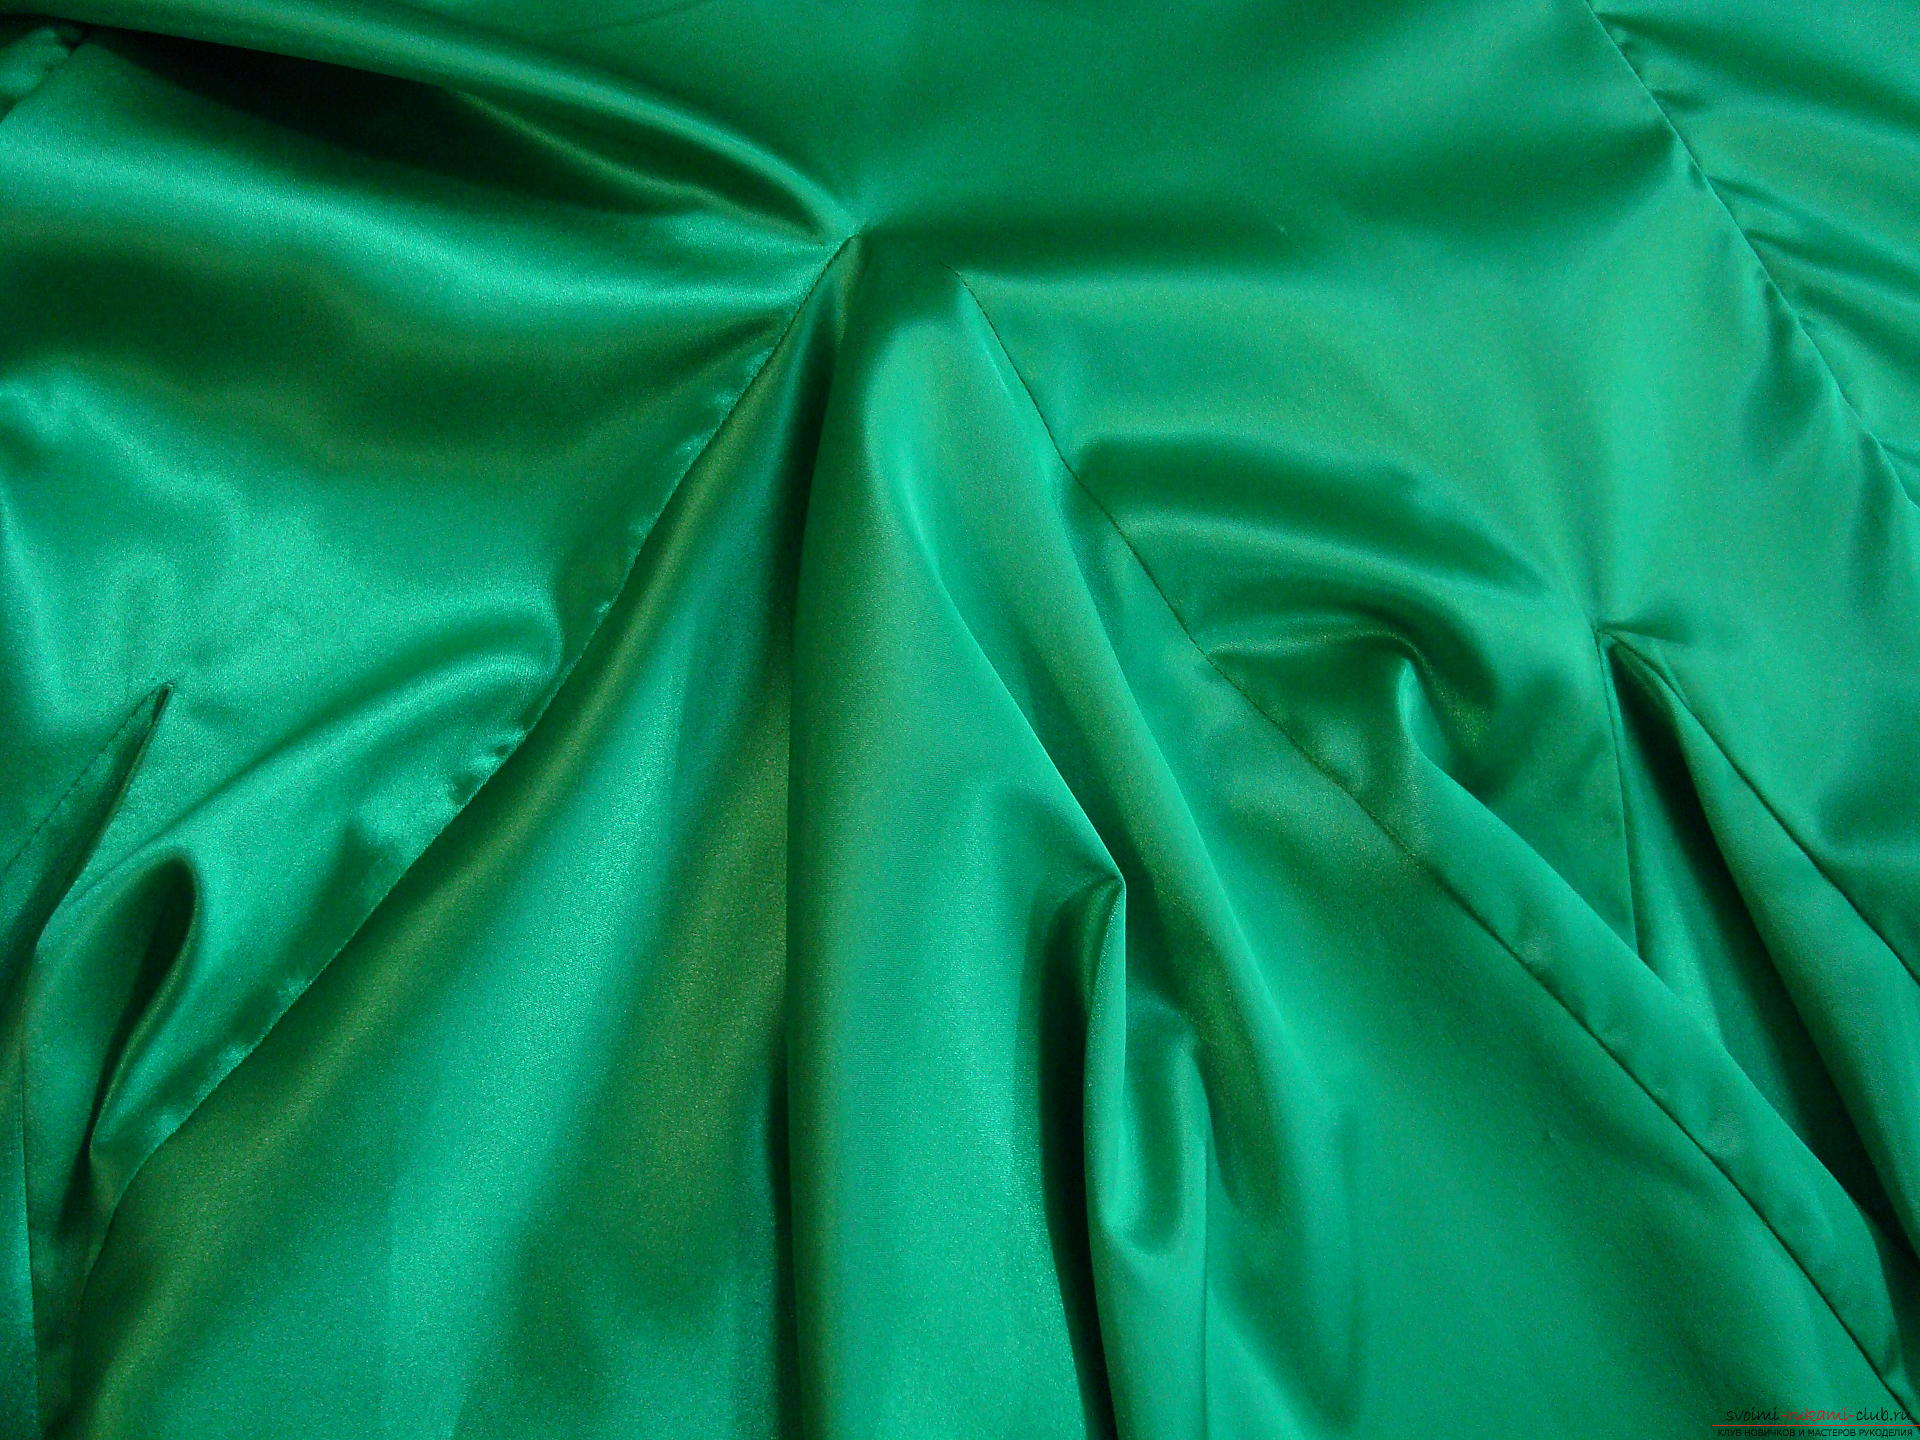 A beautiful dress can be sewn at home using a pattern and outline.